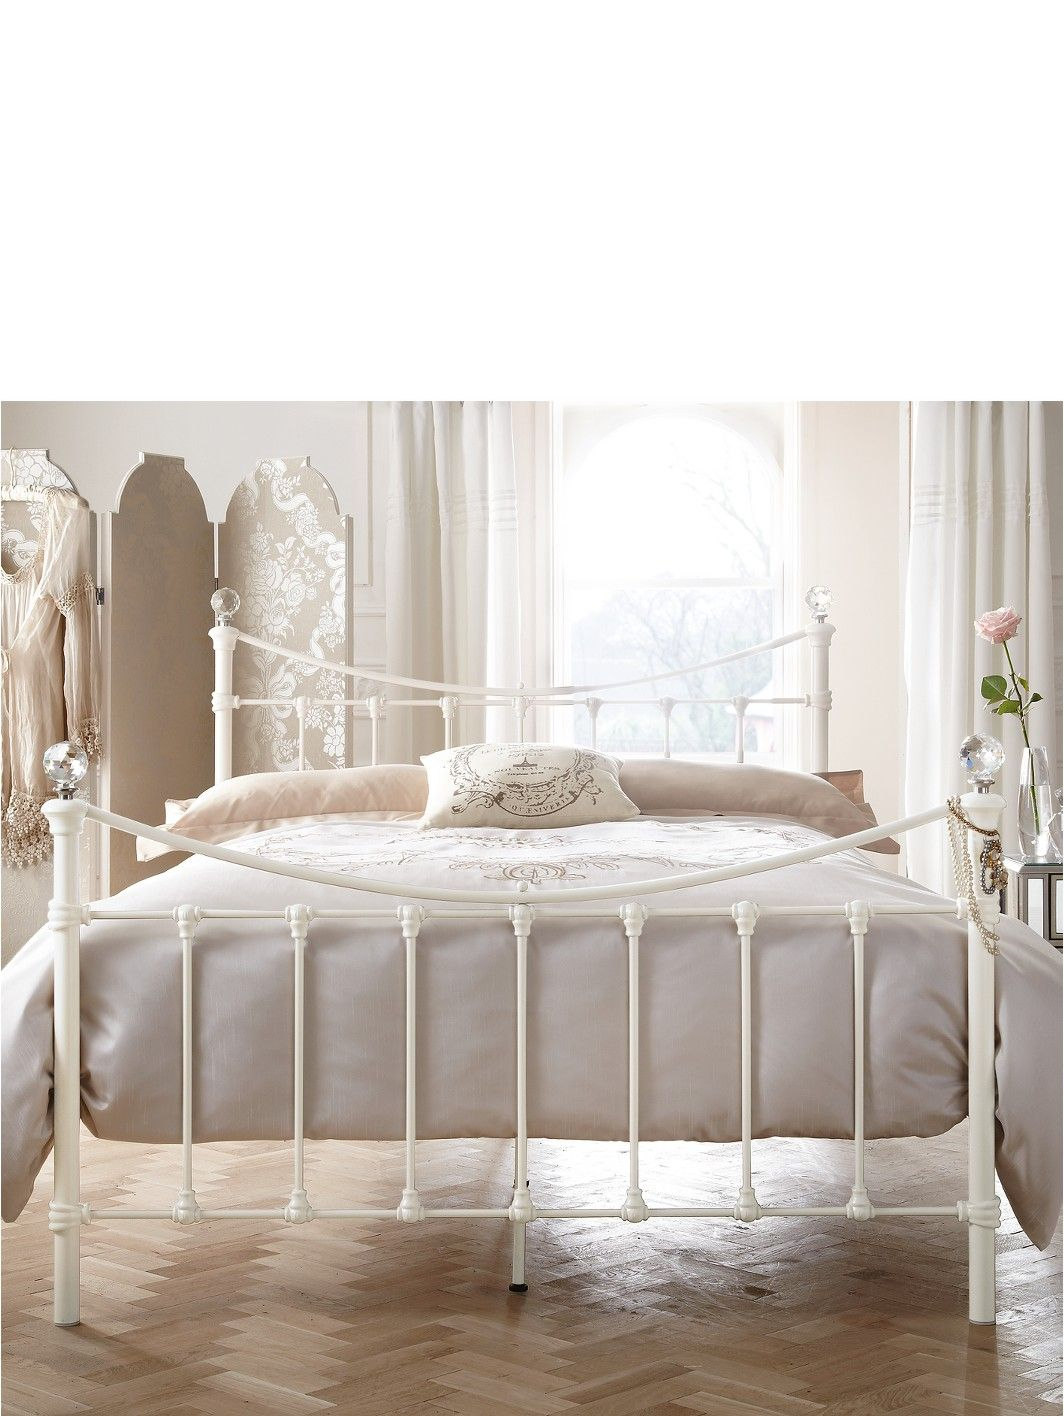 woolworths becomes diy projects bed frame metal beds bed rh pinterest com